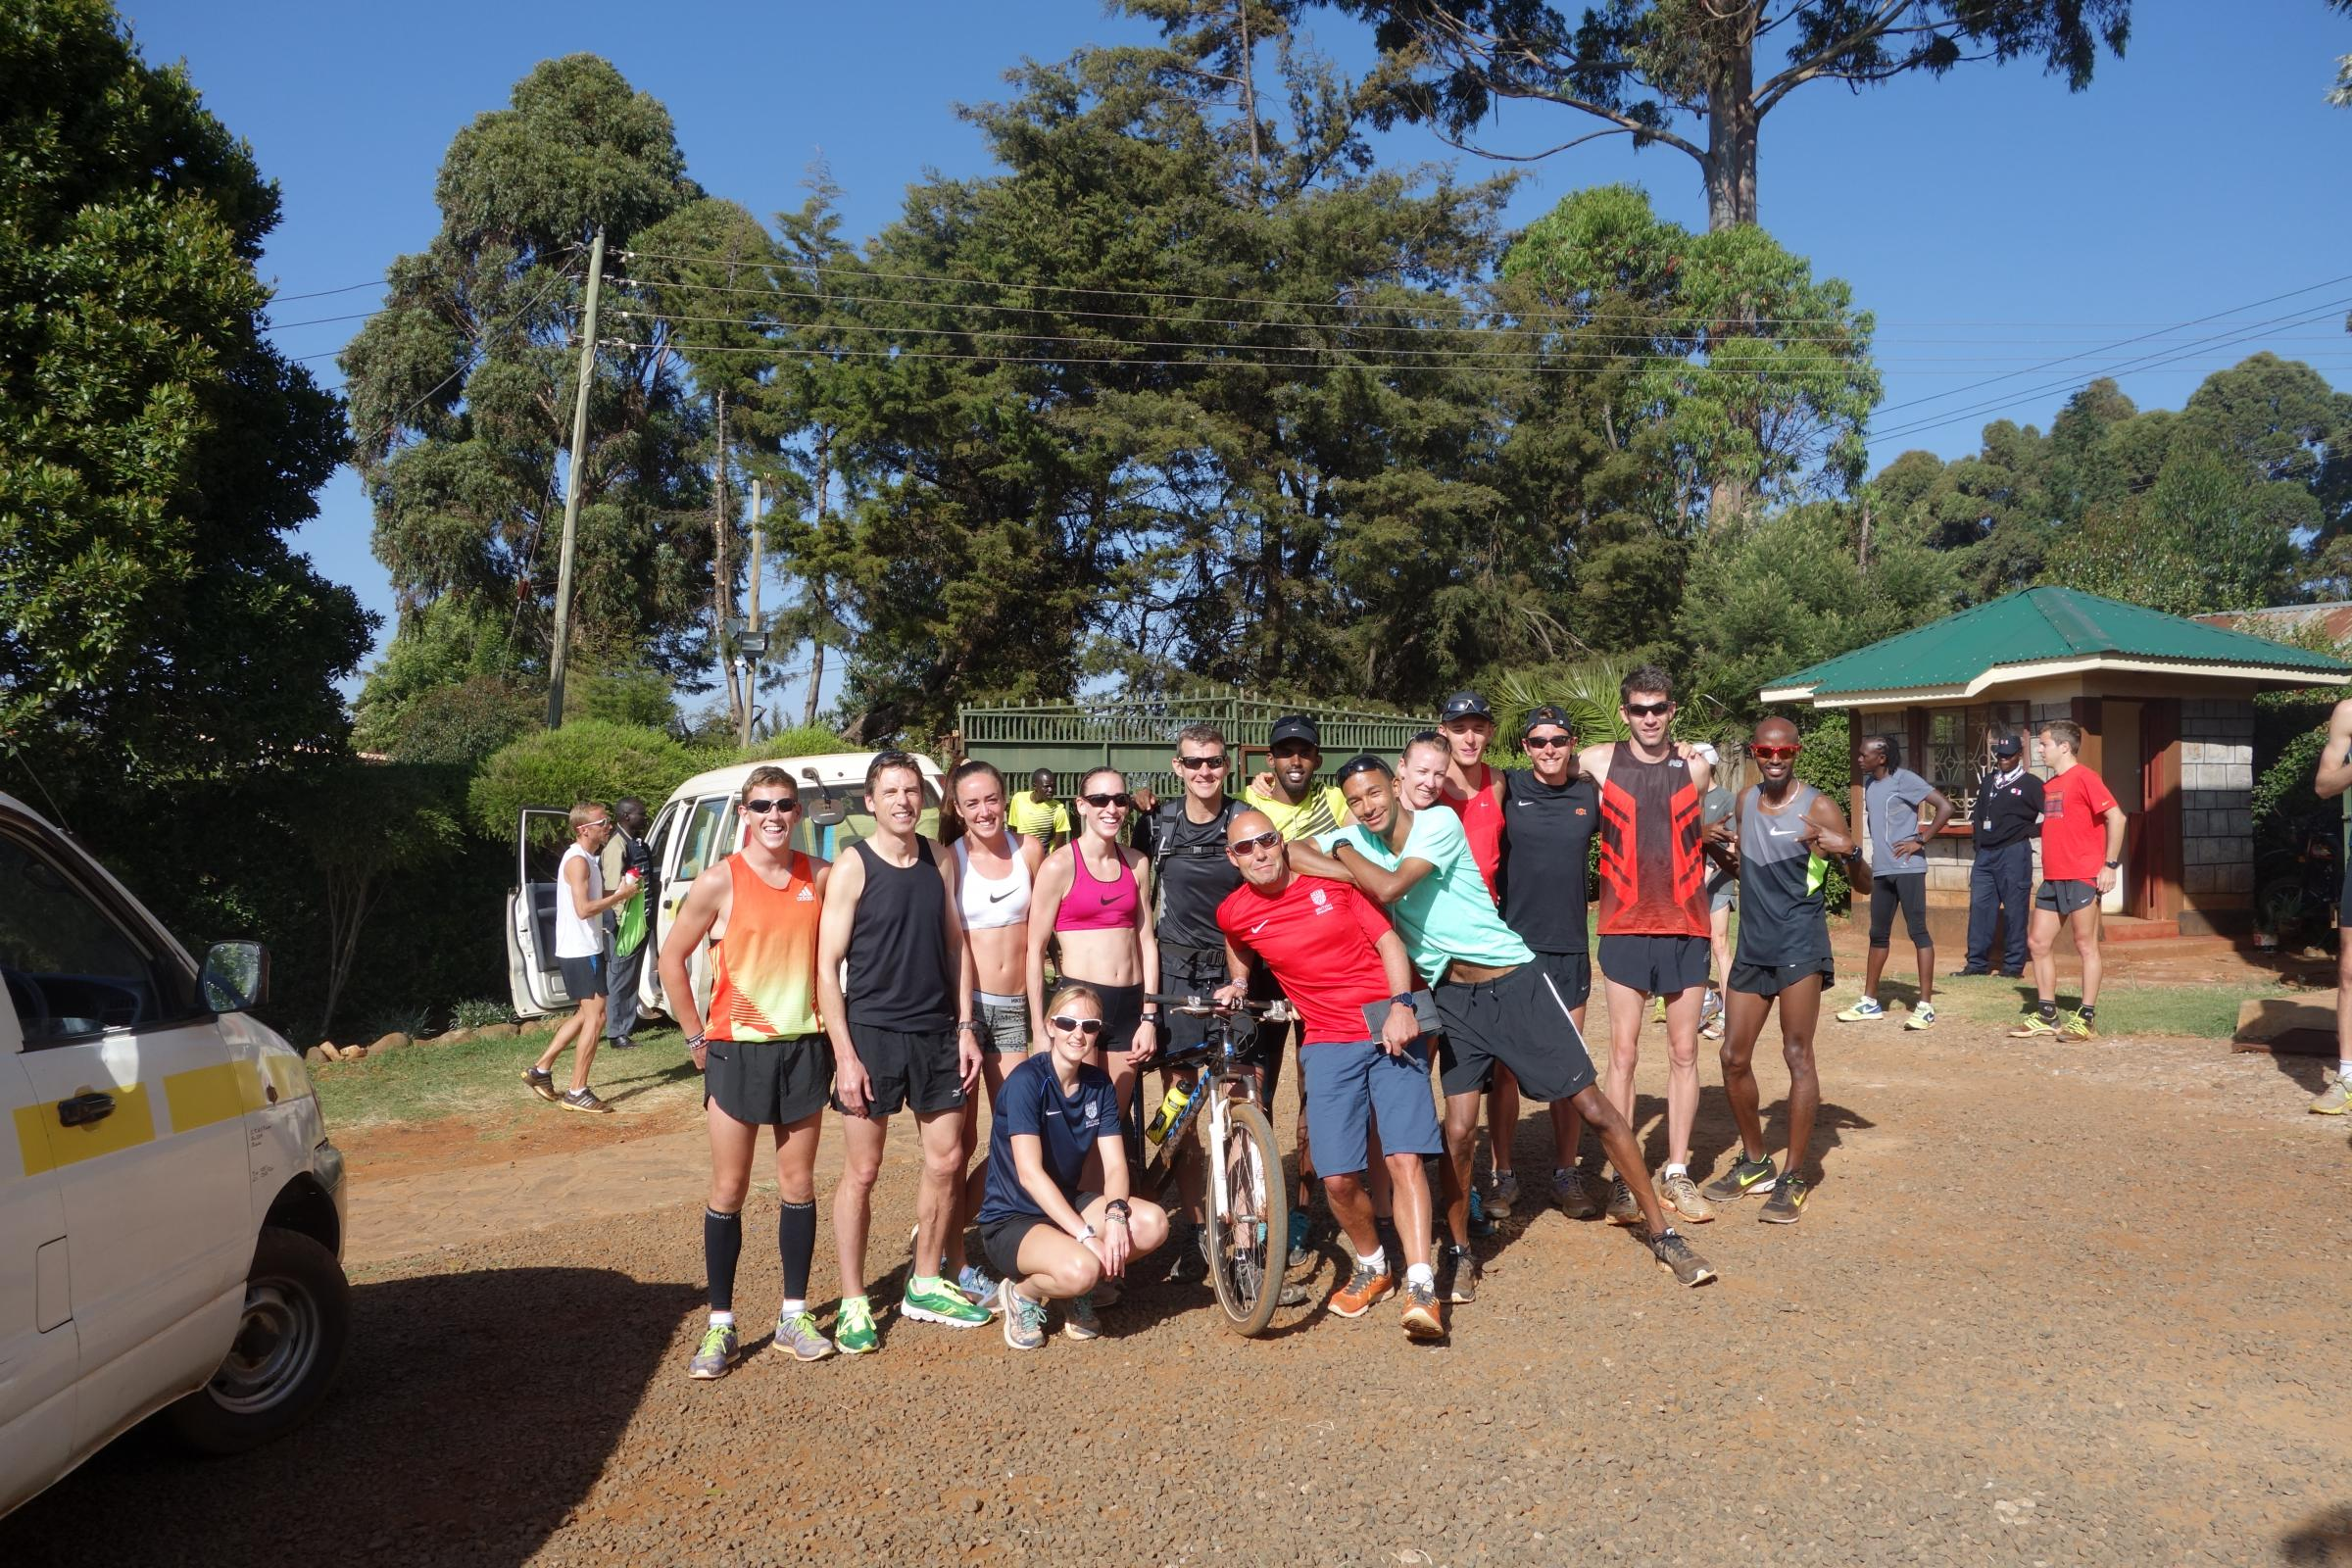 AFRICAN BASE: Laura Weightman (centre) pictured with other British athletes in the Kenyan town of Iten, including Mo Farah (far right)